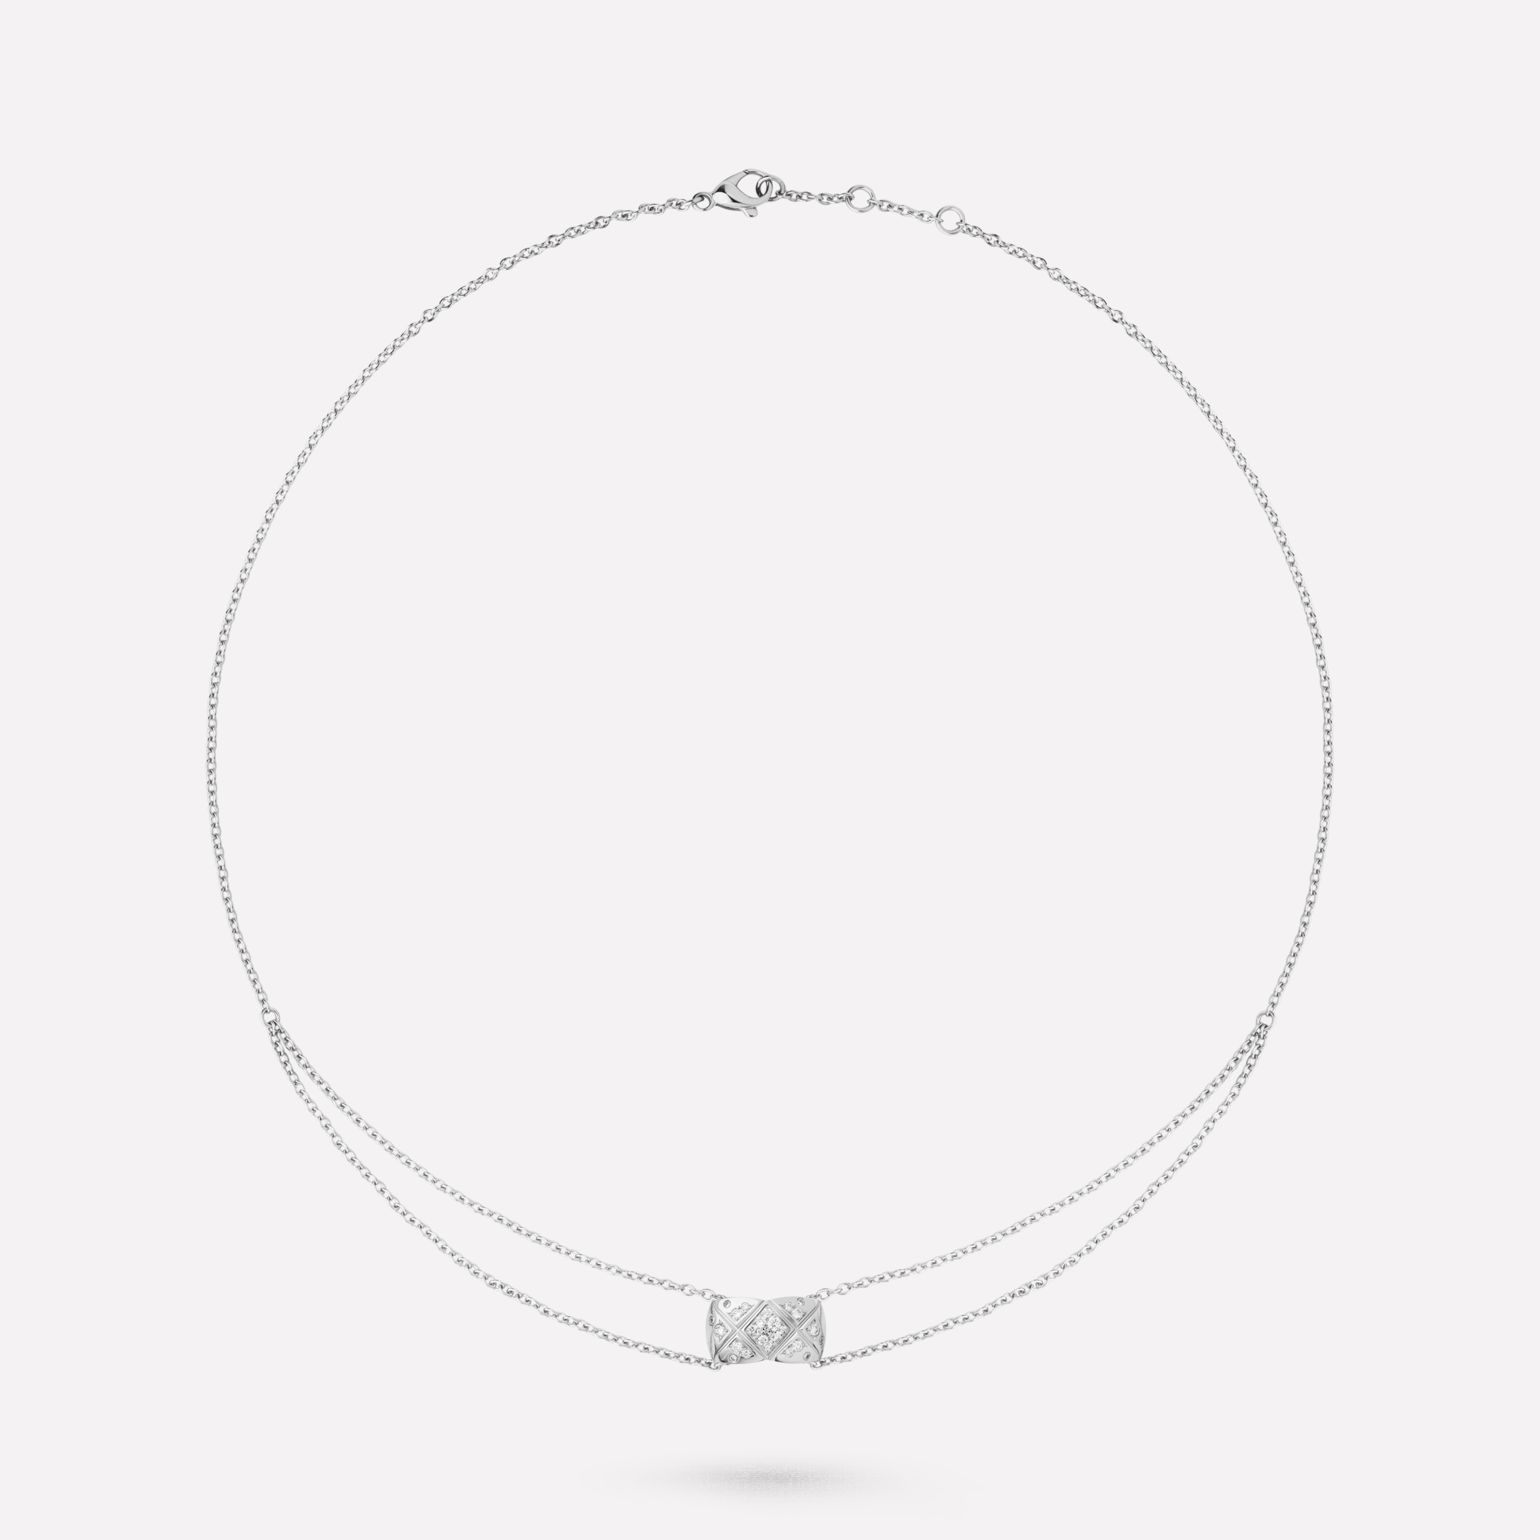 Collier Coco Crush Motif matelassé, or blanc 18 carats, diamants